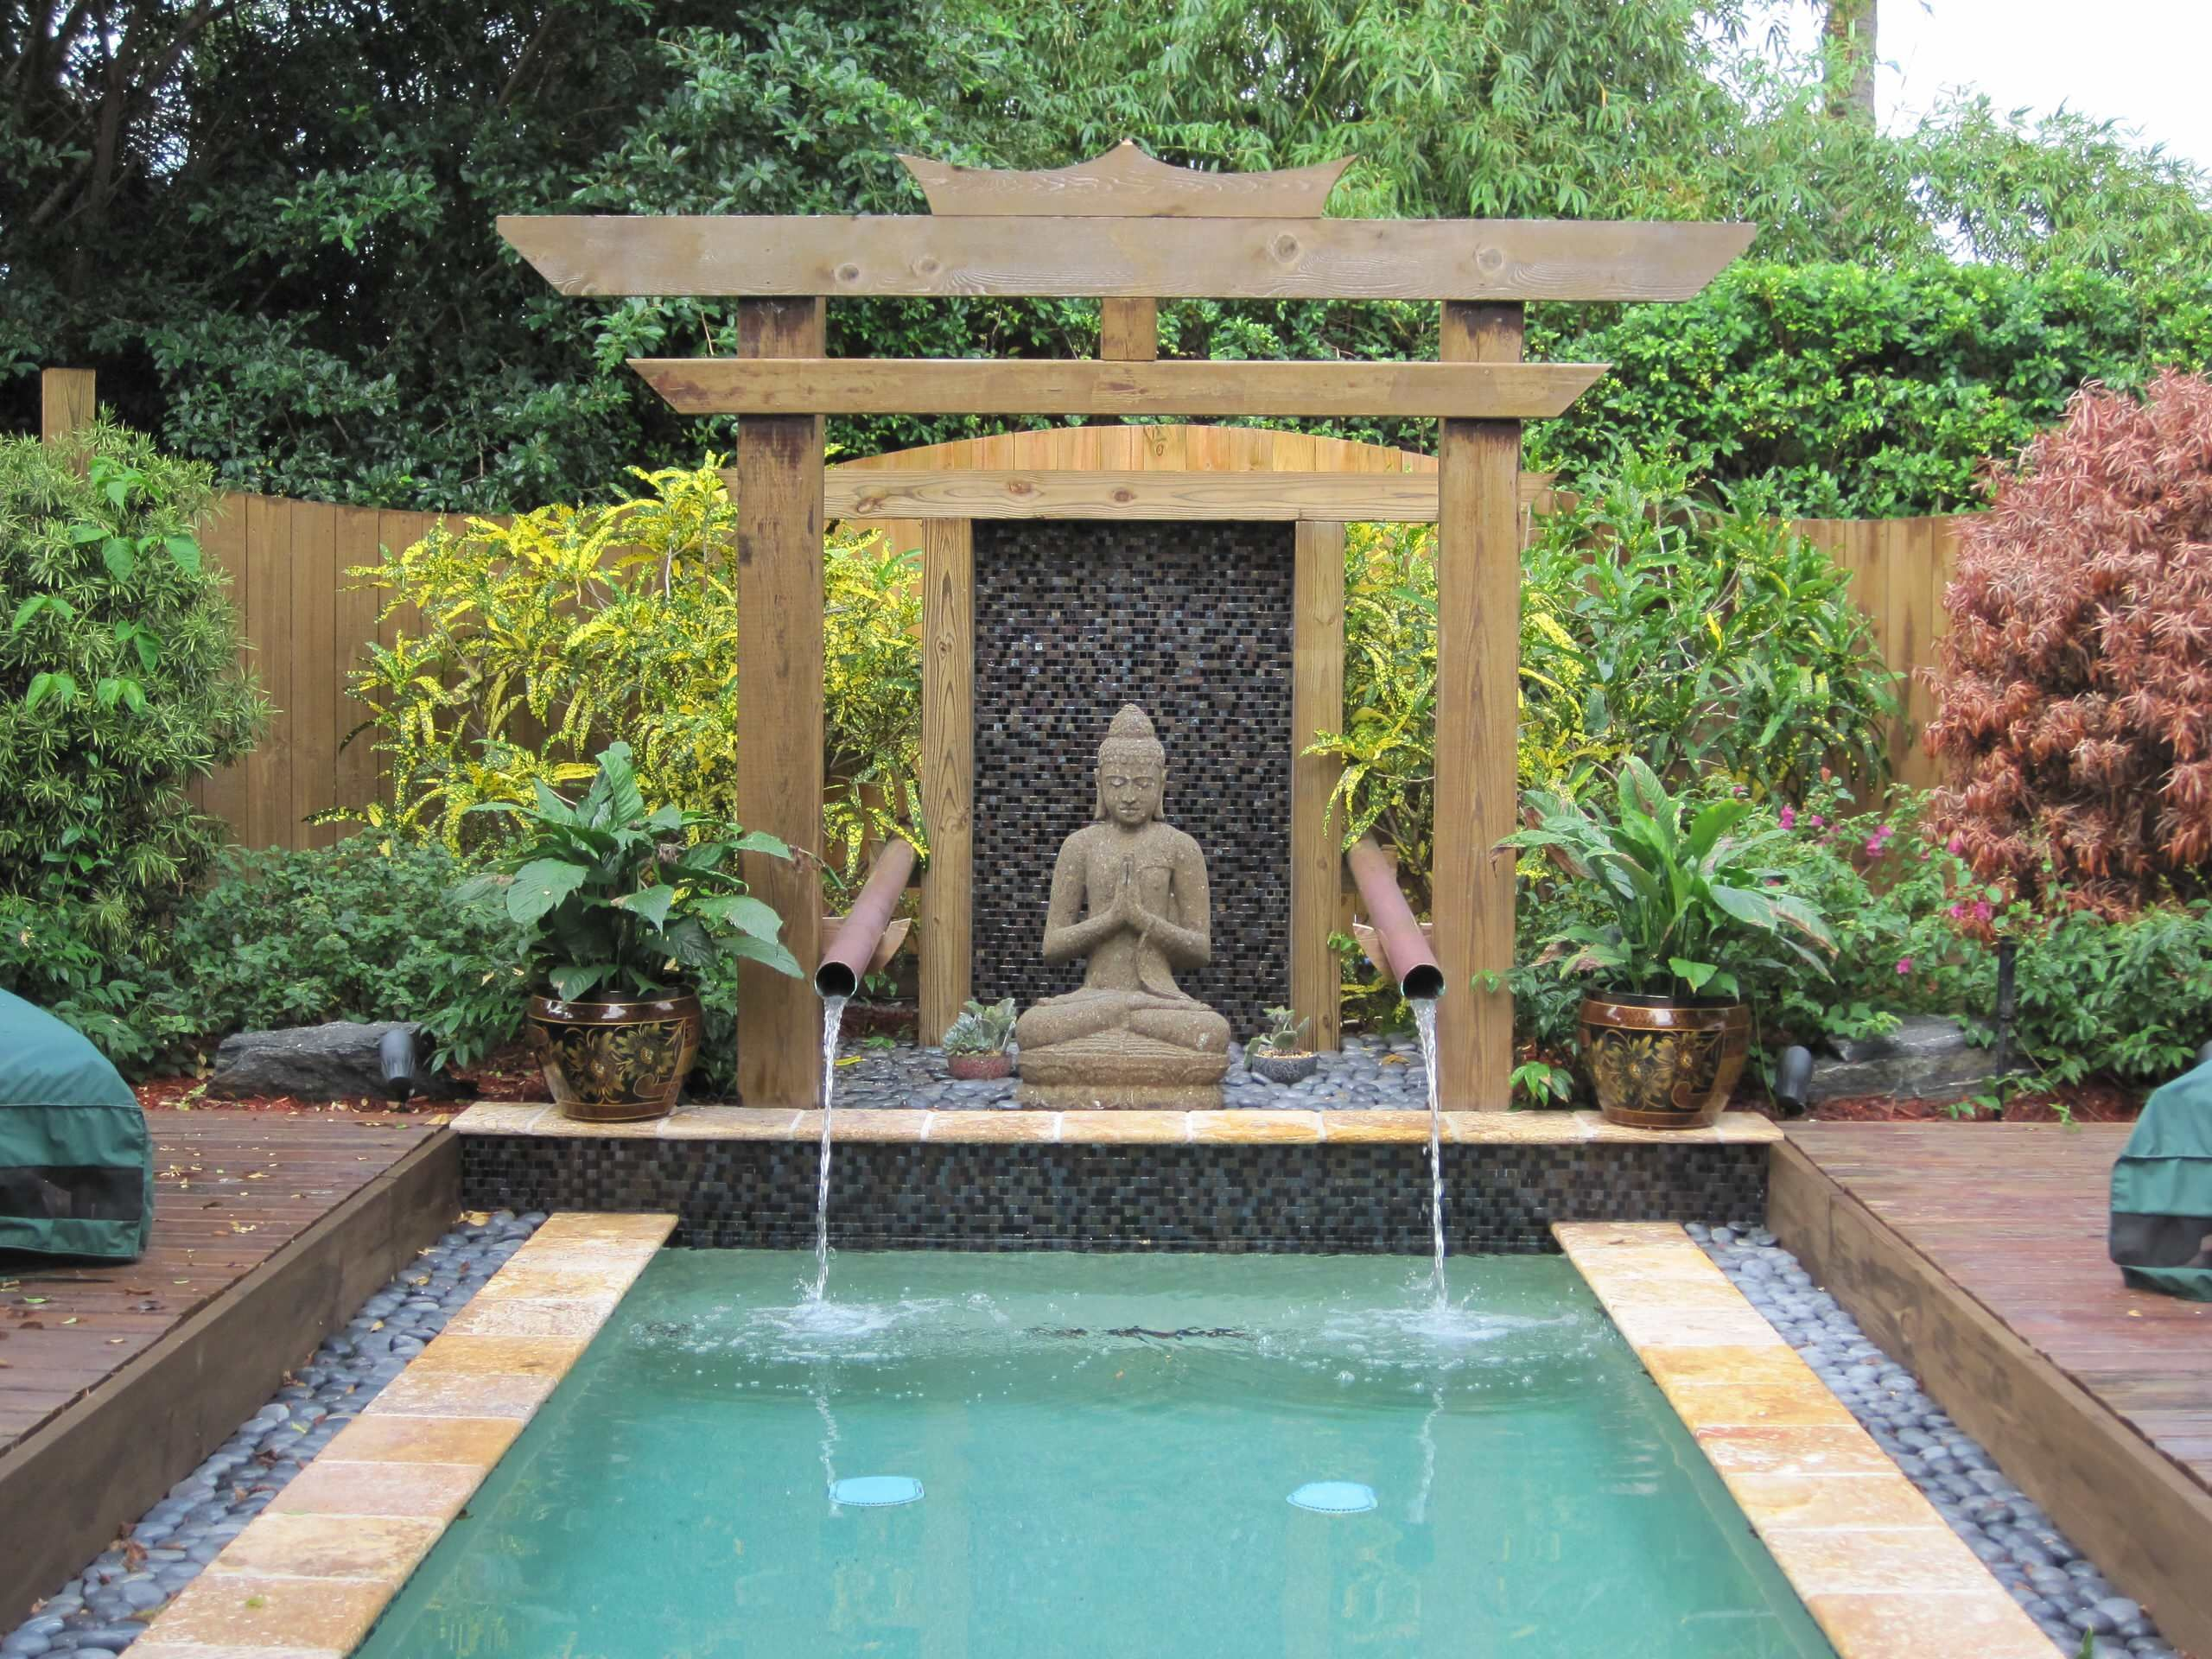 How To Make A Zen Garden Design In Your Backyard Asian Pool With Water Features And Outdoor Fountains Also Anese Maple